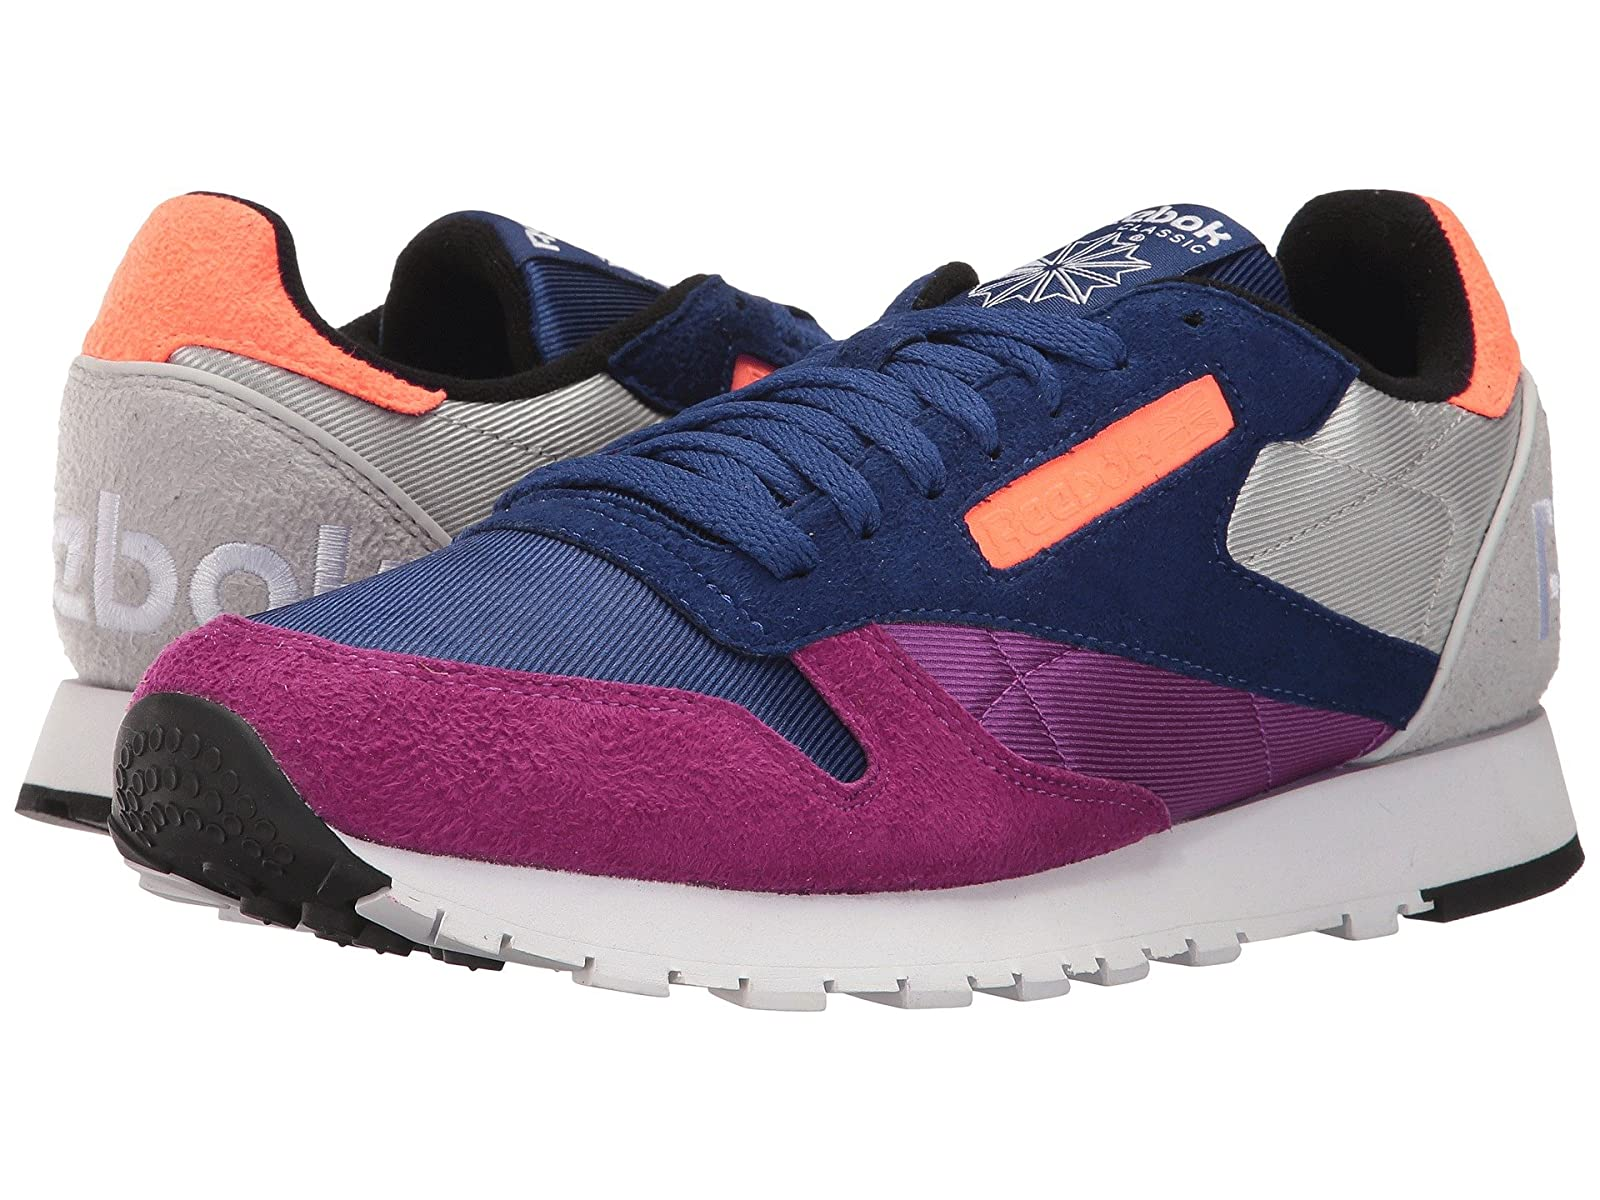 Reebok Classic Leather WBCheap and distinctive eye-catching shoes